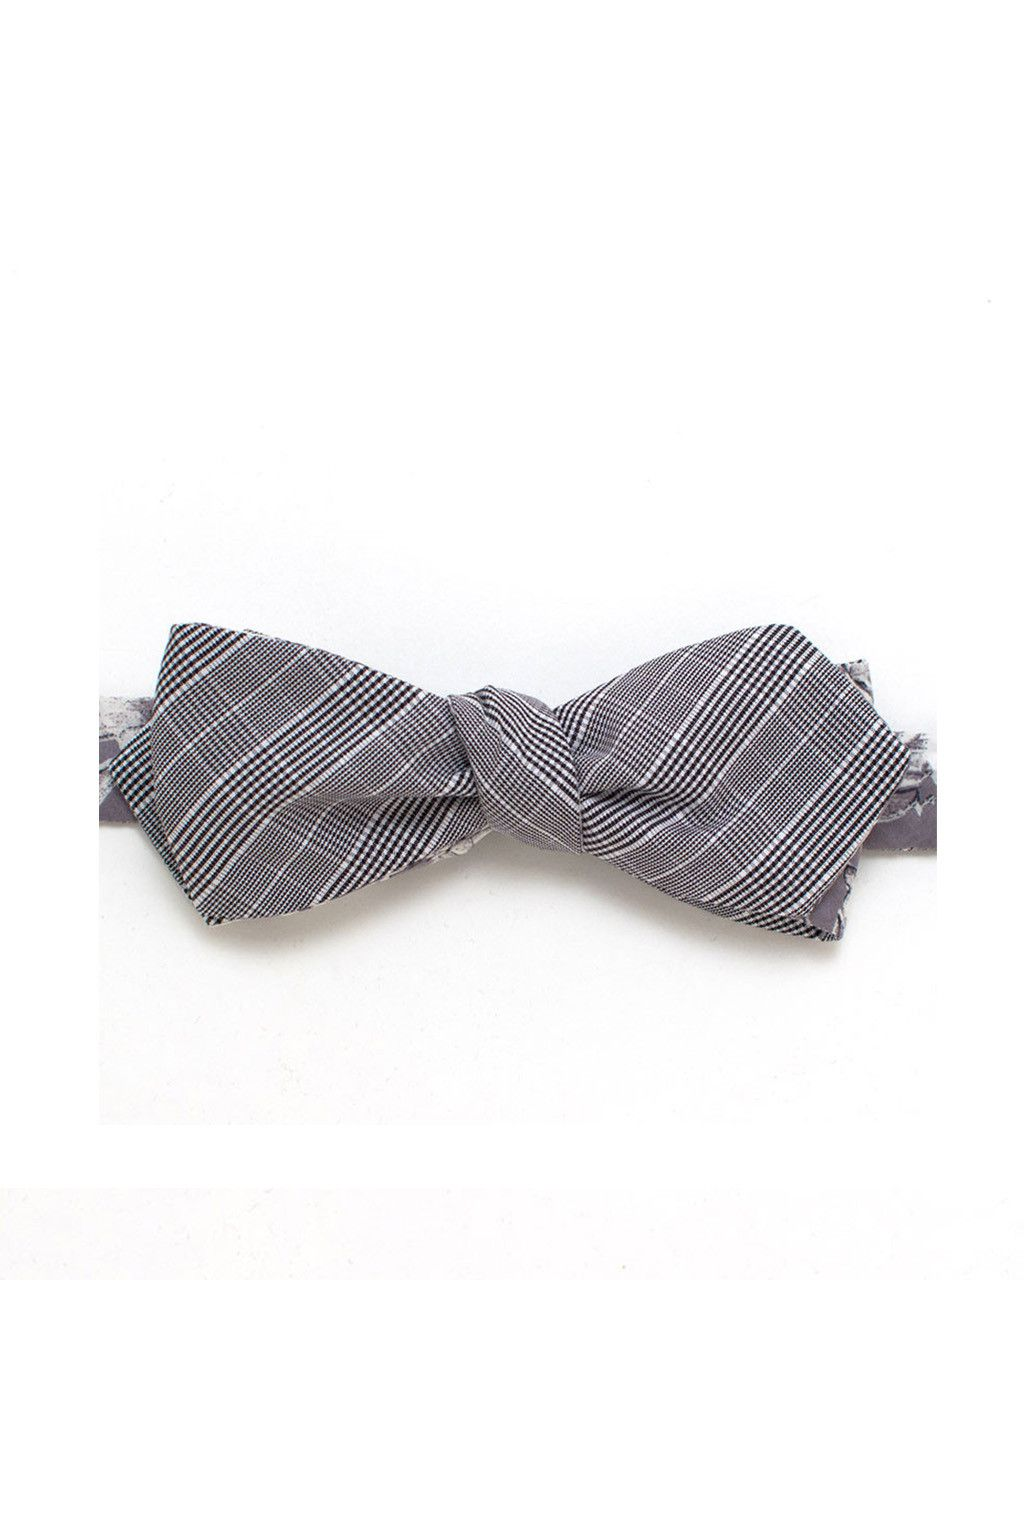 GENERAL KNOT Suiting Check & Grey Floral Reversible Bow Tie